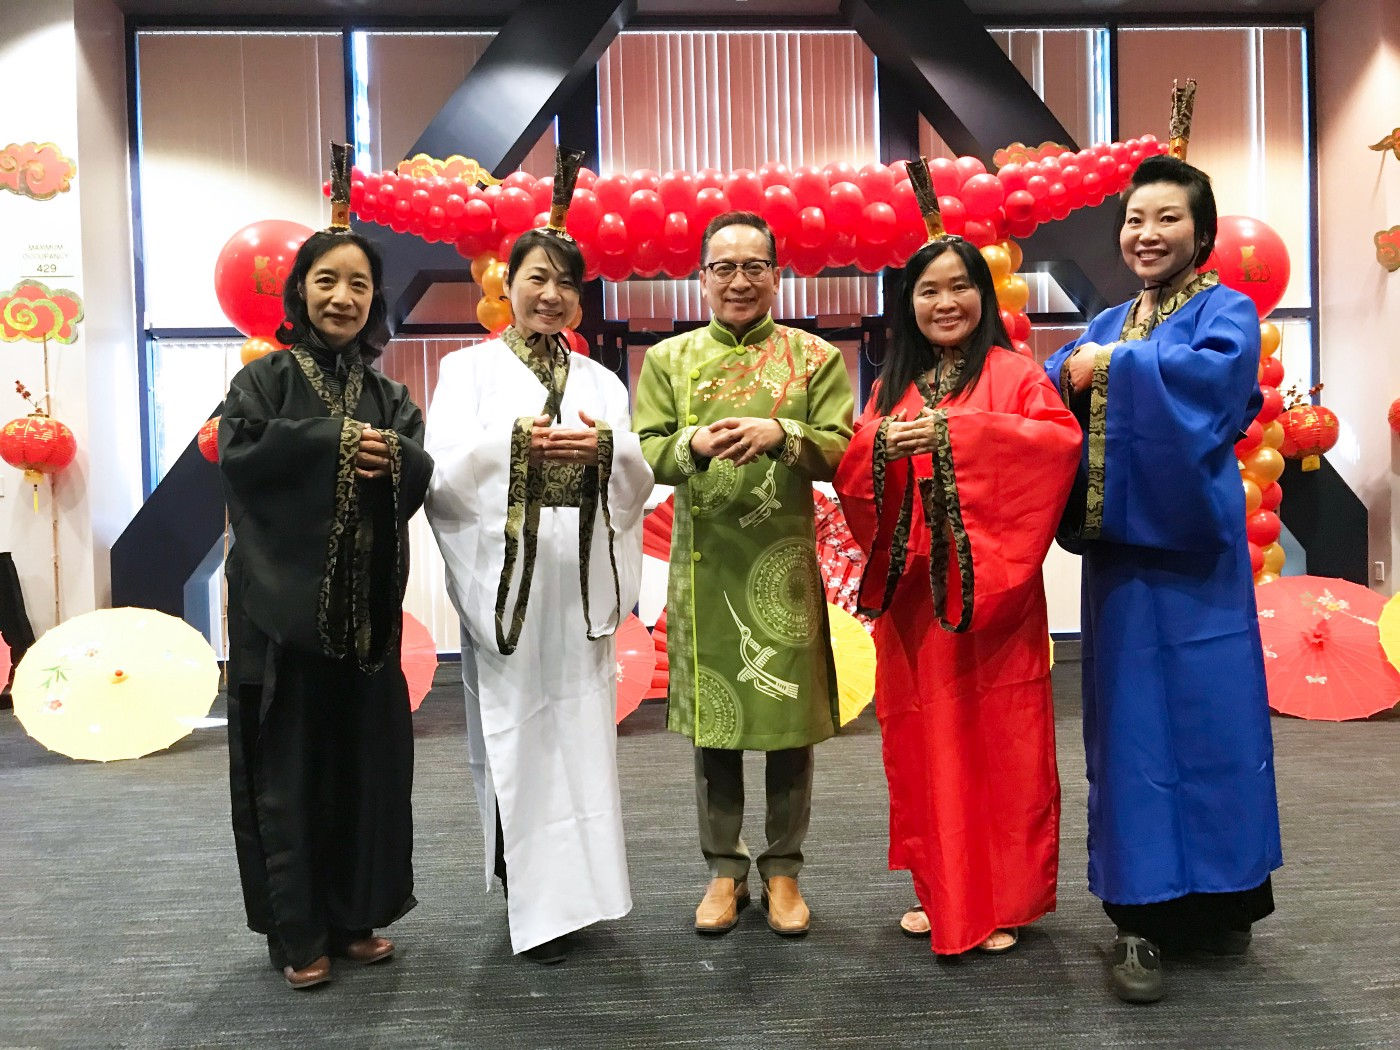 Hu Ying, Jessica Chen, Tri C. Tran, Ruohmei Hsieh and Ying Petersen stand next to each other with their hands together